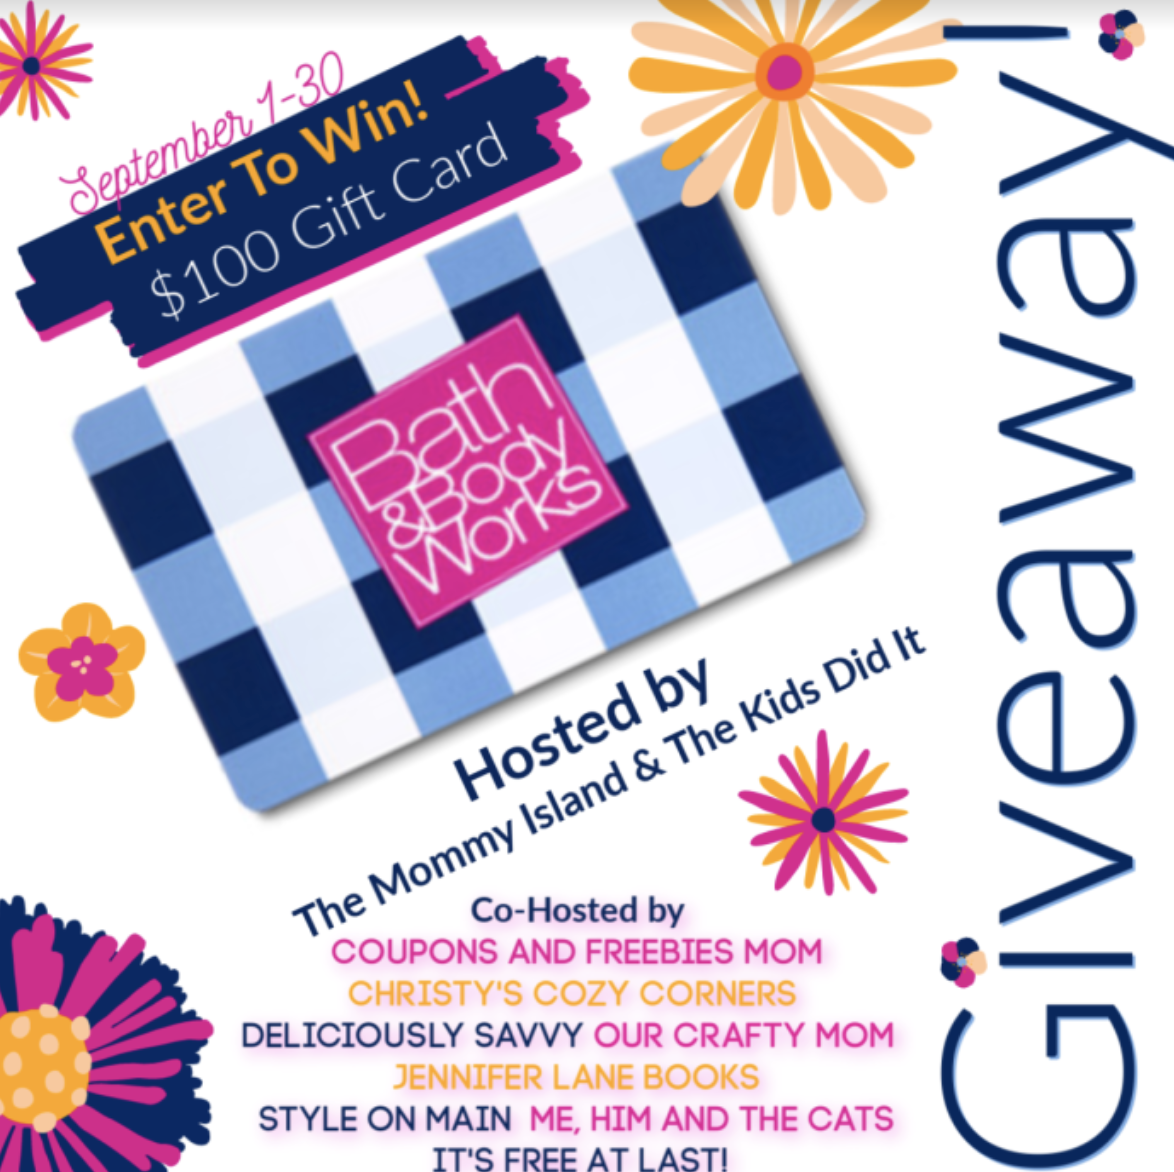 fall giveaway, bath & body works, e-gift card, bath & body works gift card, fall contests